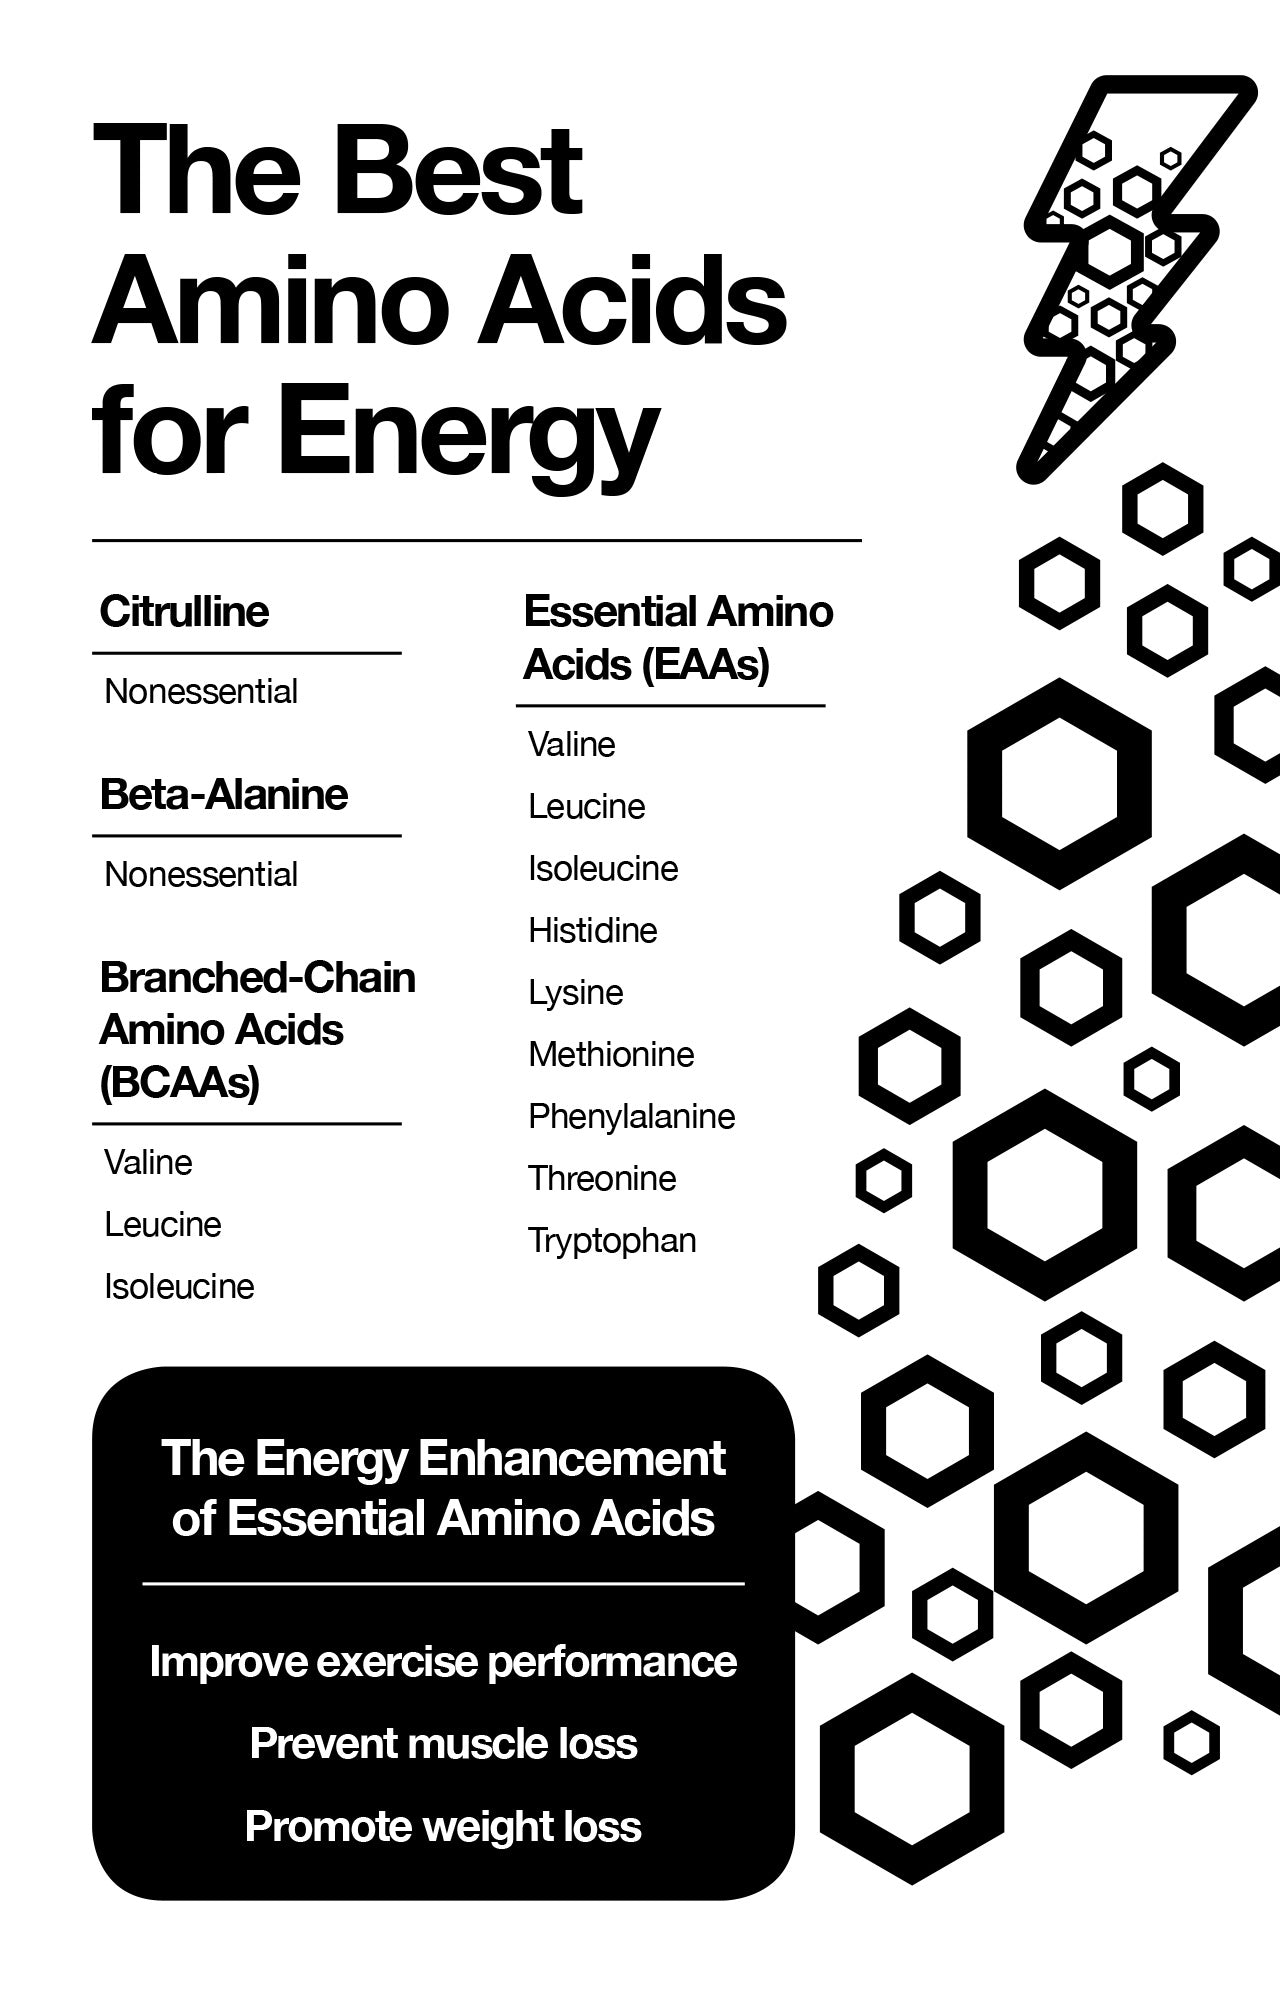 The best amino acids for energy.